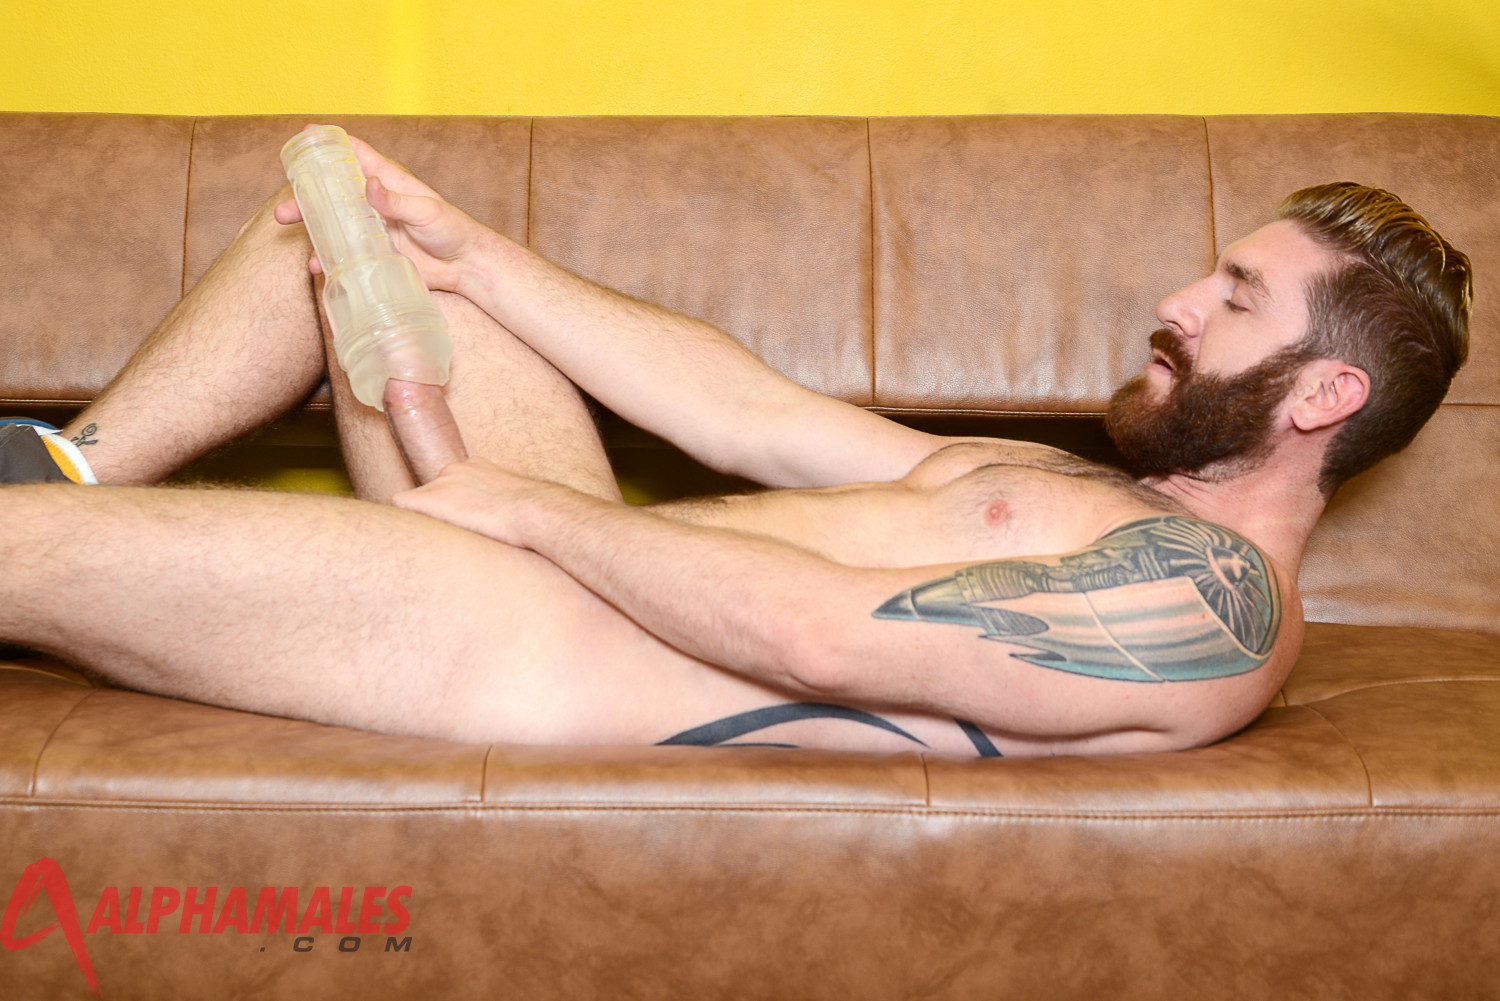 AlphaMales-Geoffrey-Paine-Big-Cock-Fleshlight-Fleshjack-Amateur-Gay-Porn-08 Amateur Hairy Muscle Stud Geoffrey Paine With Big Cock and Fleshjack